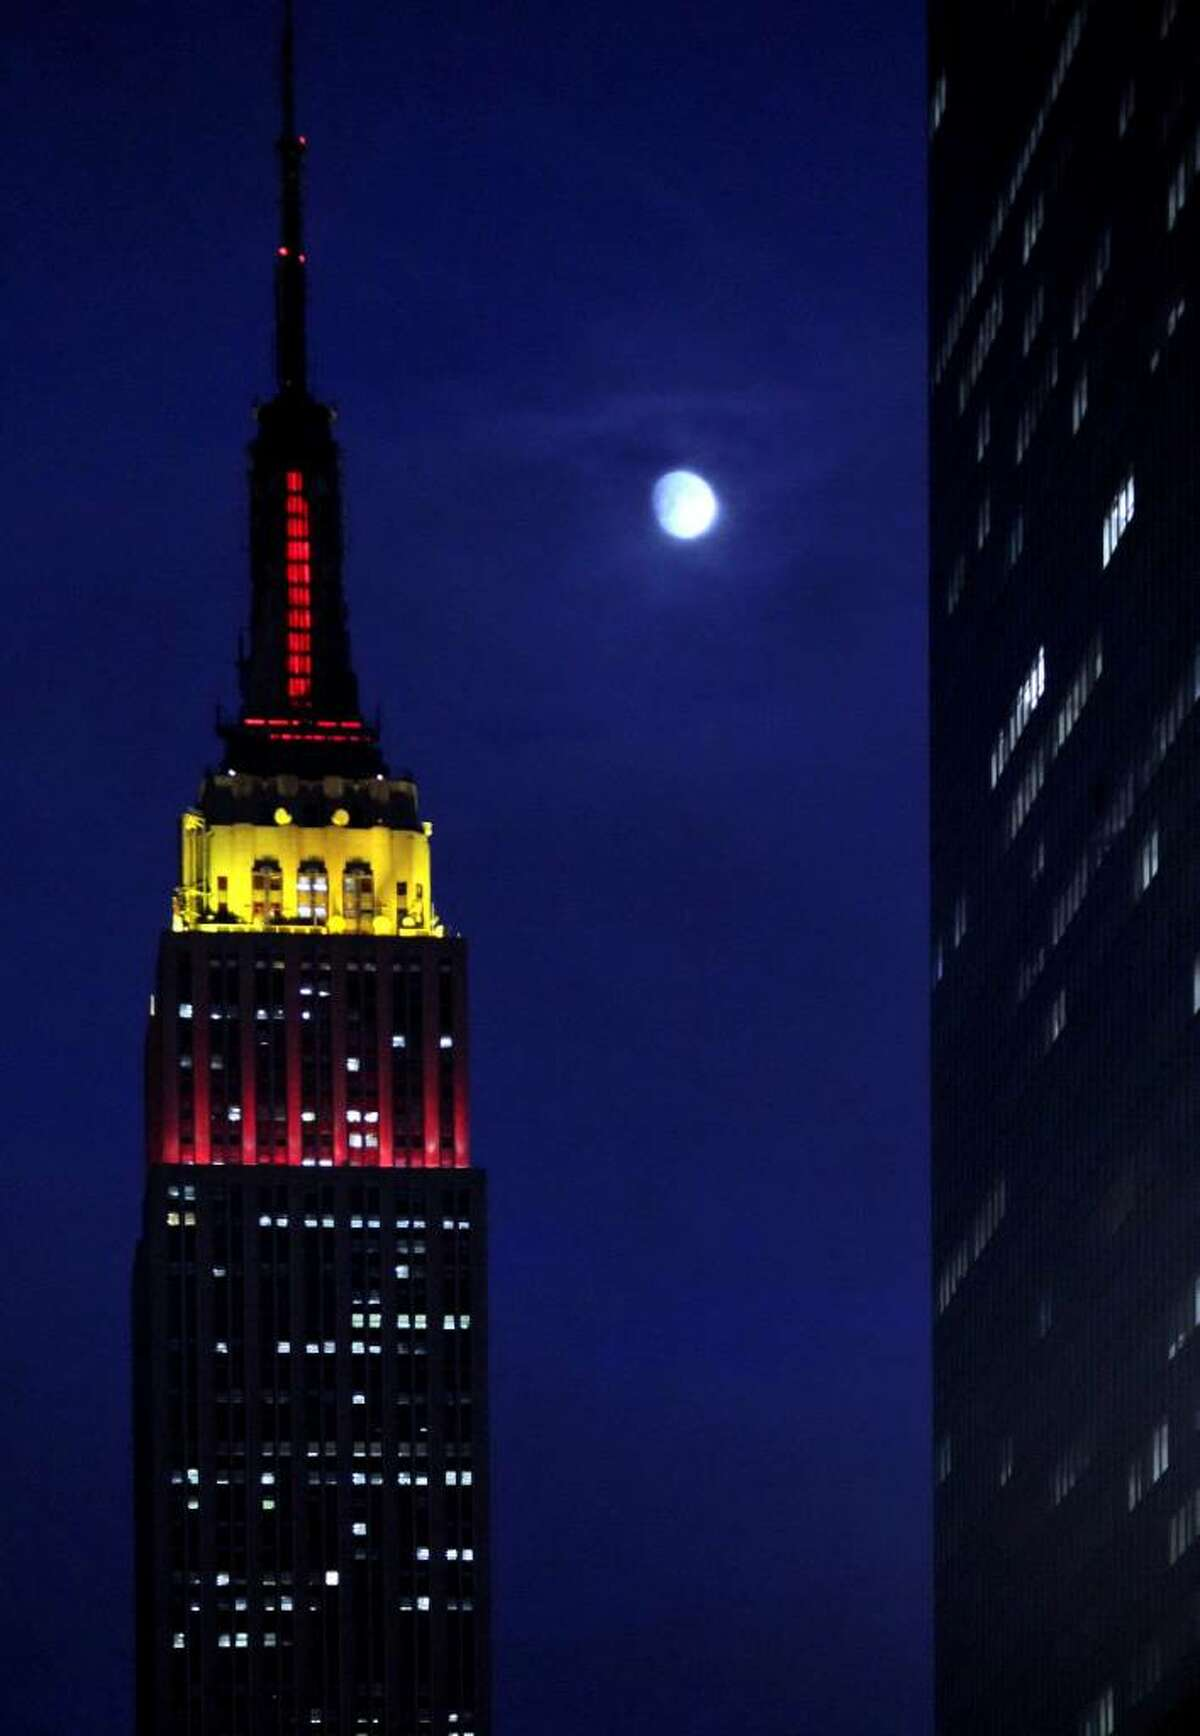 In this Sept. 30, 2009 file photo, the moon rises above New York as the Empire State Building is lit in red and yellow in honor of communist China's 60th anniversary. Catholics are criticizing the owners of the landmark skyscraper for declining to illuminate it in honor of the late Mother Teresa, who would have turned 100 on Aug. 26, 2010.